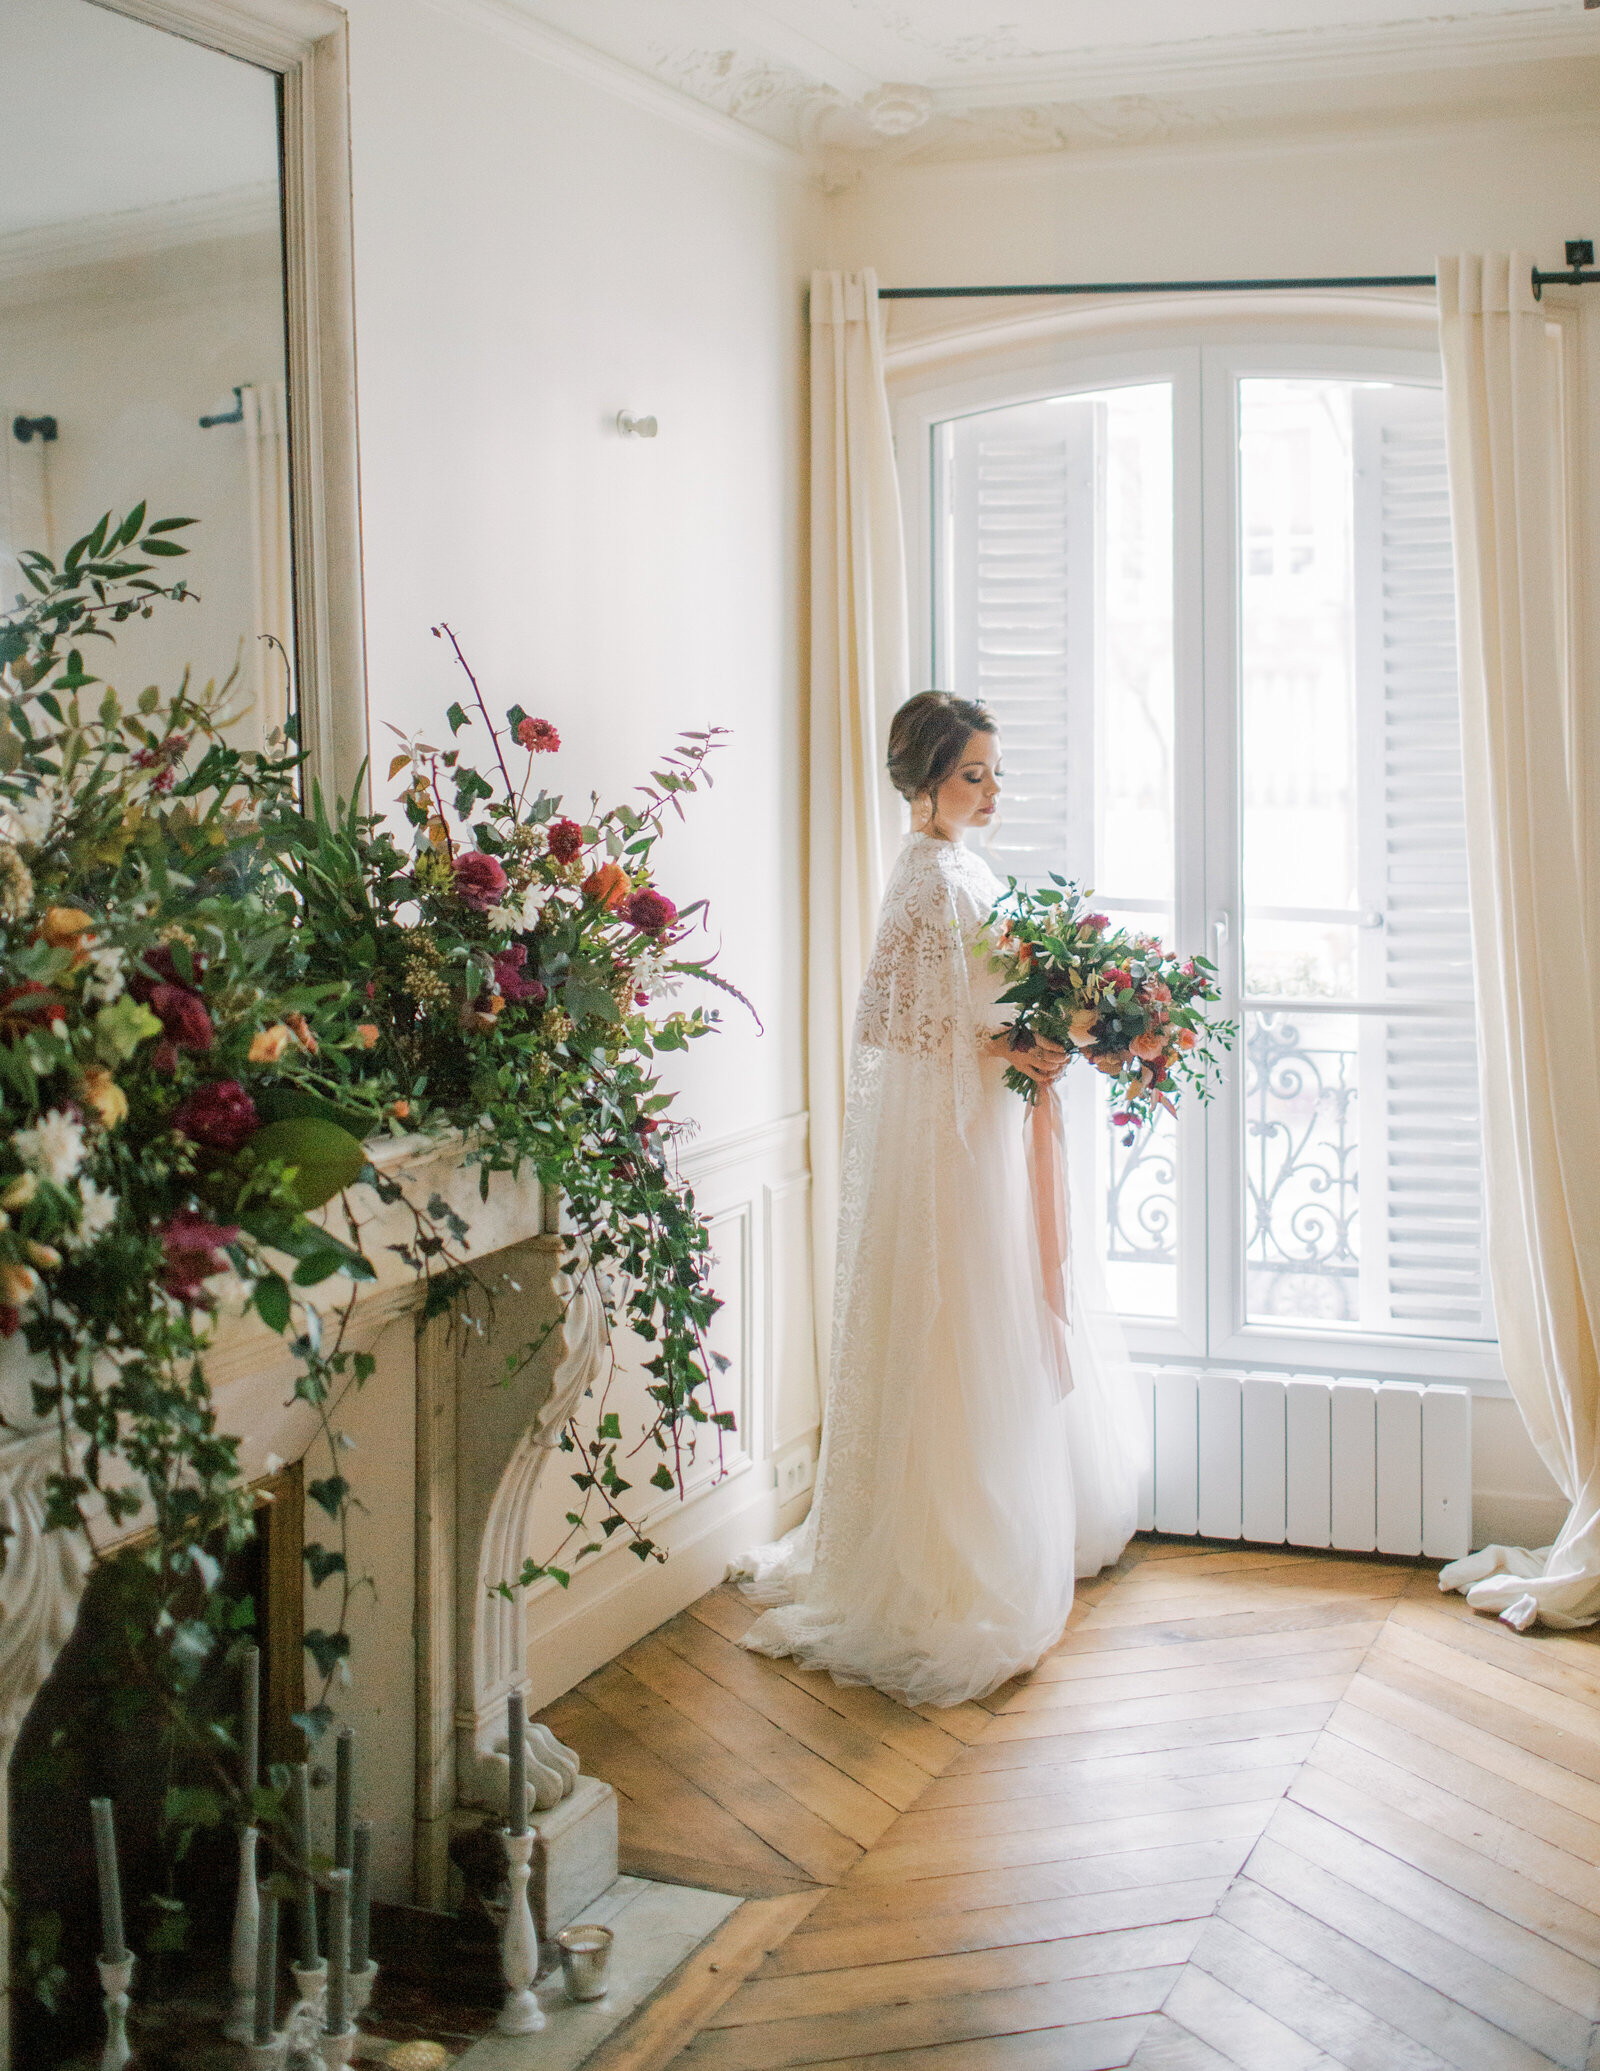 bride holding a bouquet and looking out the window in Paris apartment